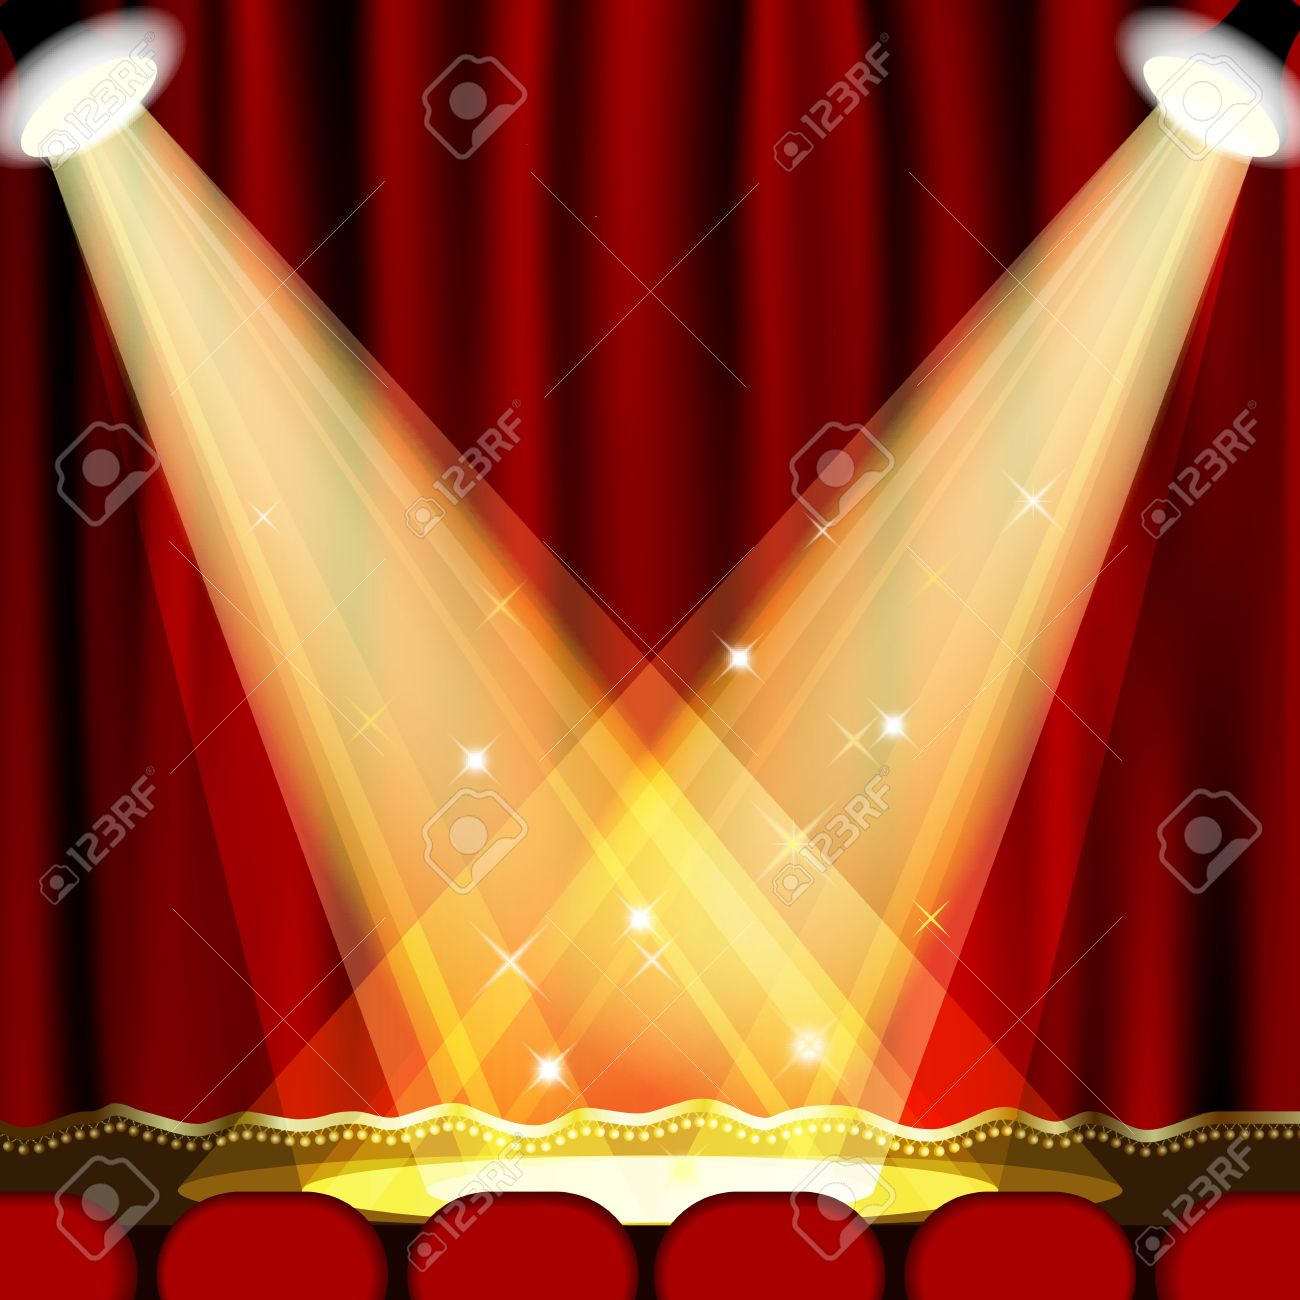 Theater Stage With Red Curtain Clipping Mask Mesh EPS10 Royalty.